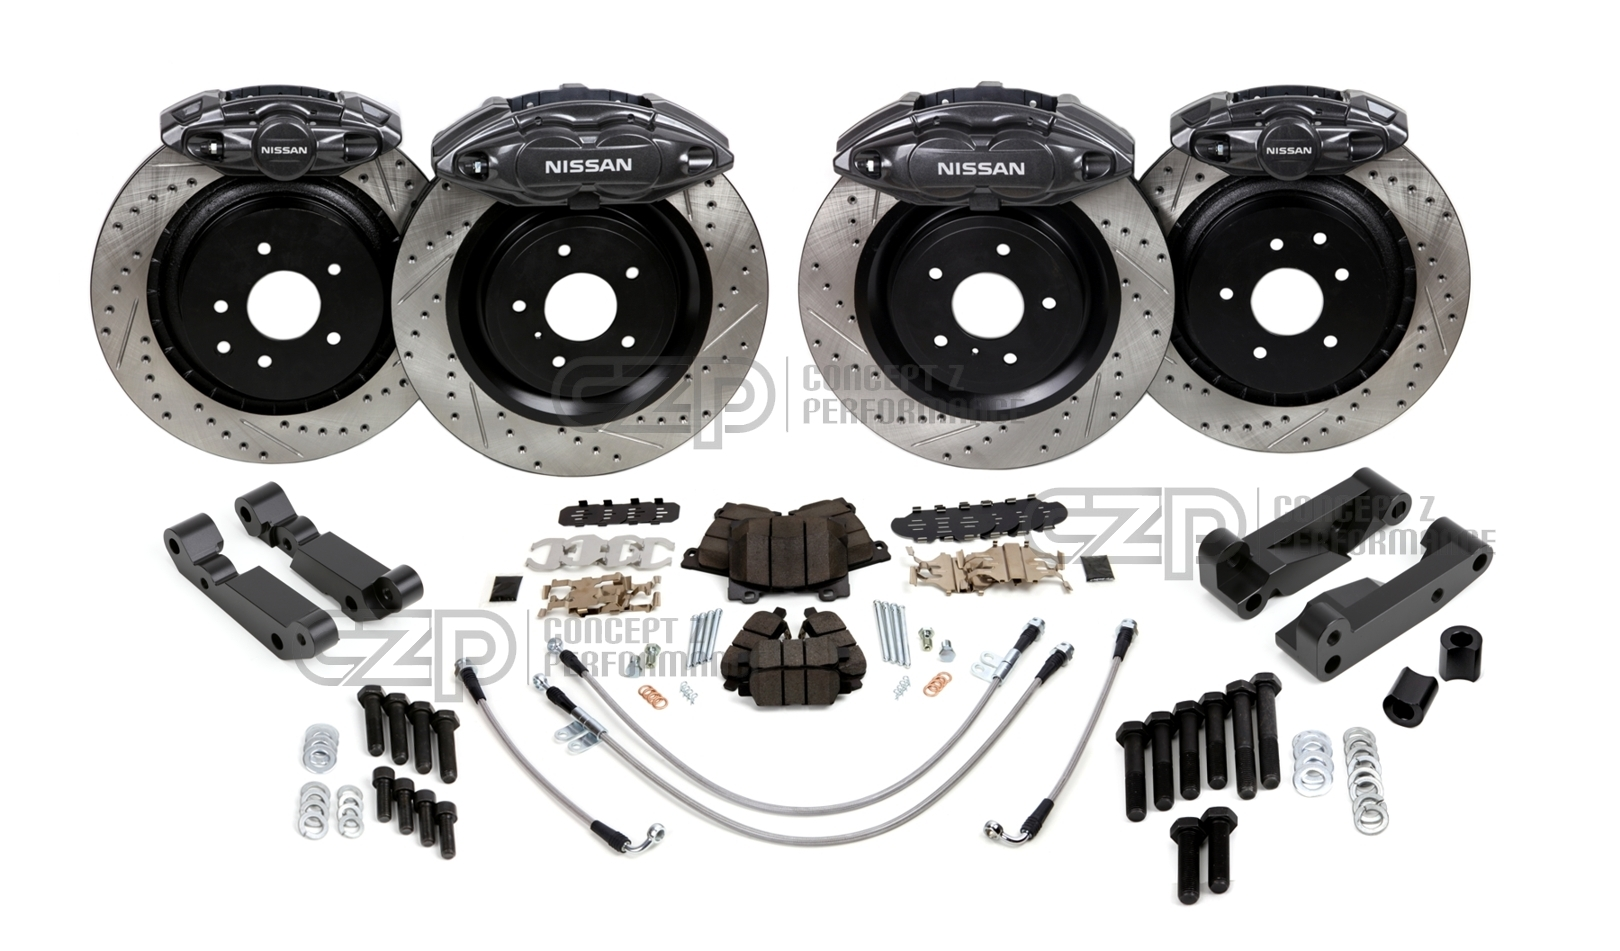 Big Brake Upgrade Brackets For 89-98 Nissan 240SX to 300ZX Calipers 350Z Rotors